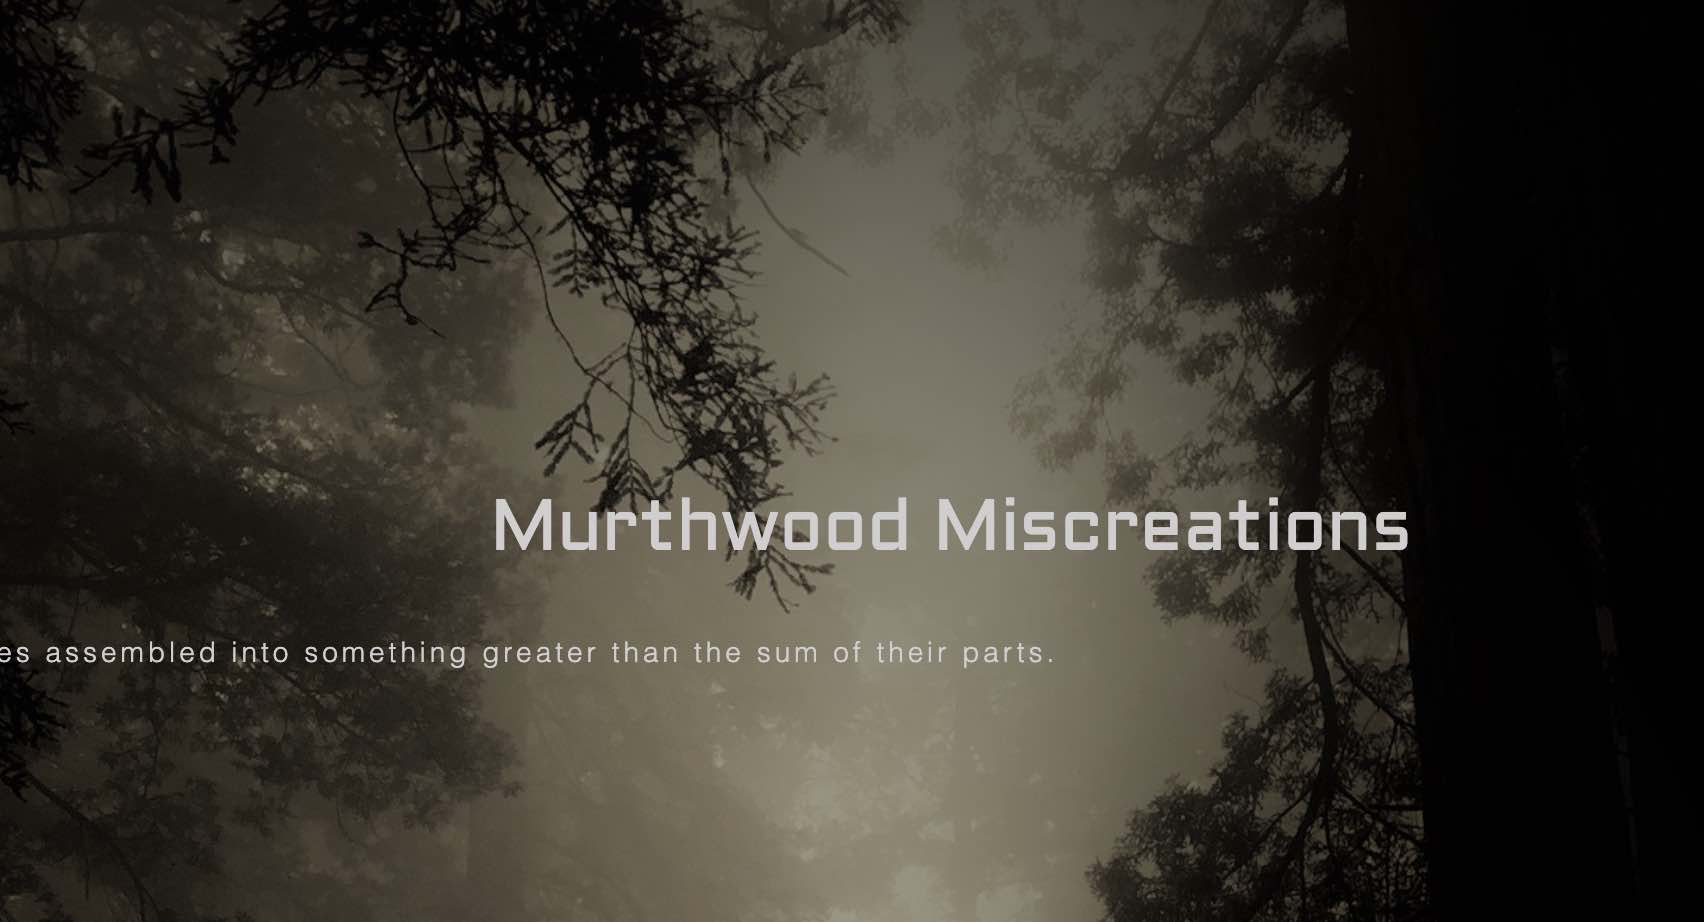 Ms. Murthwood